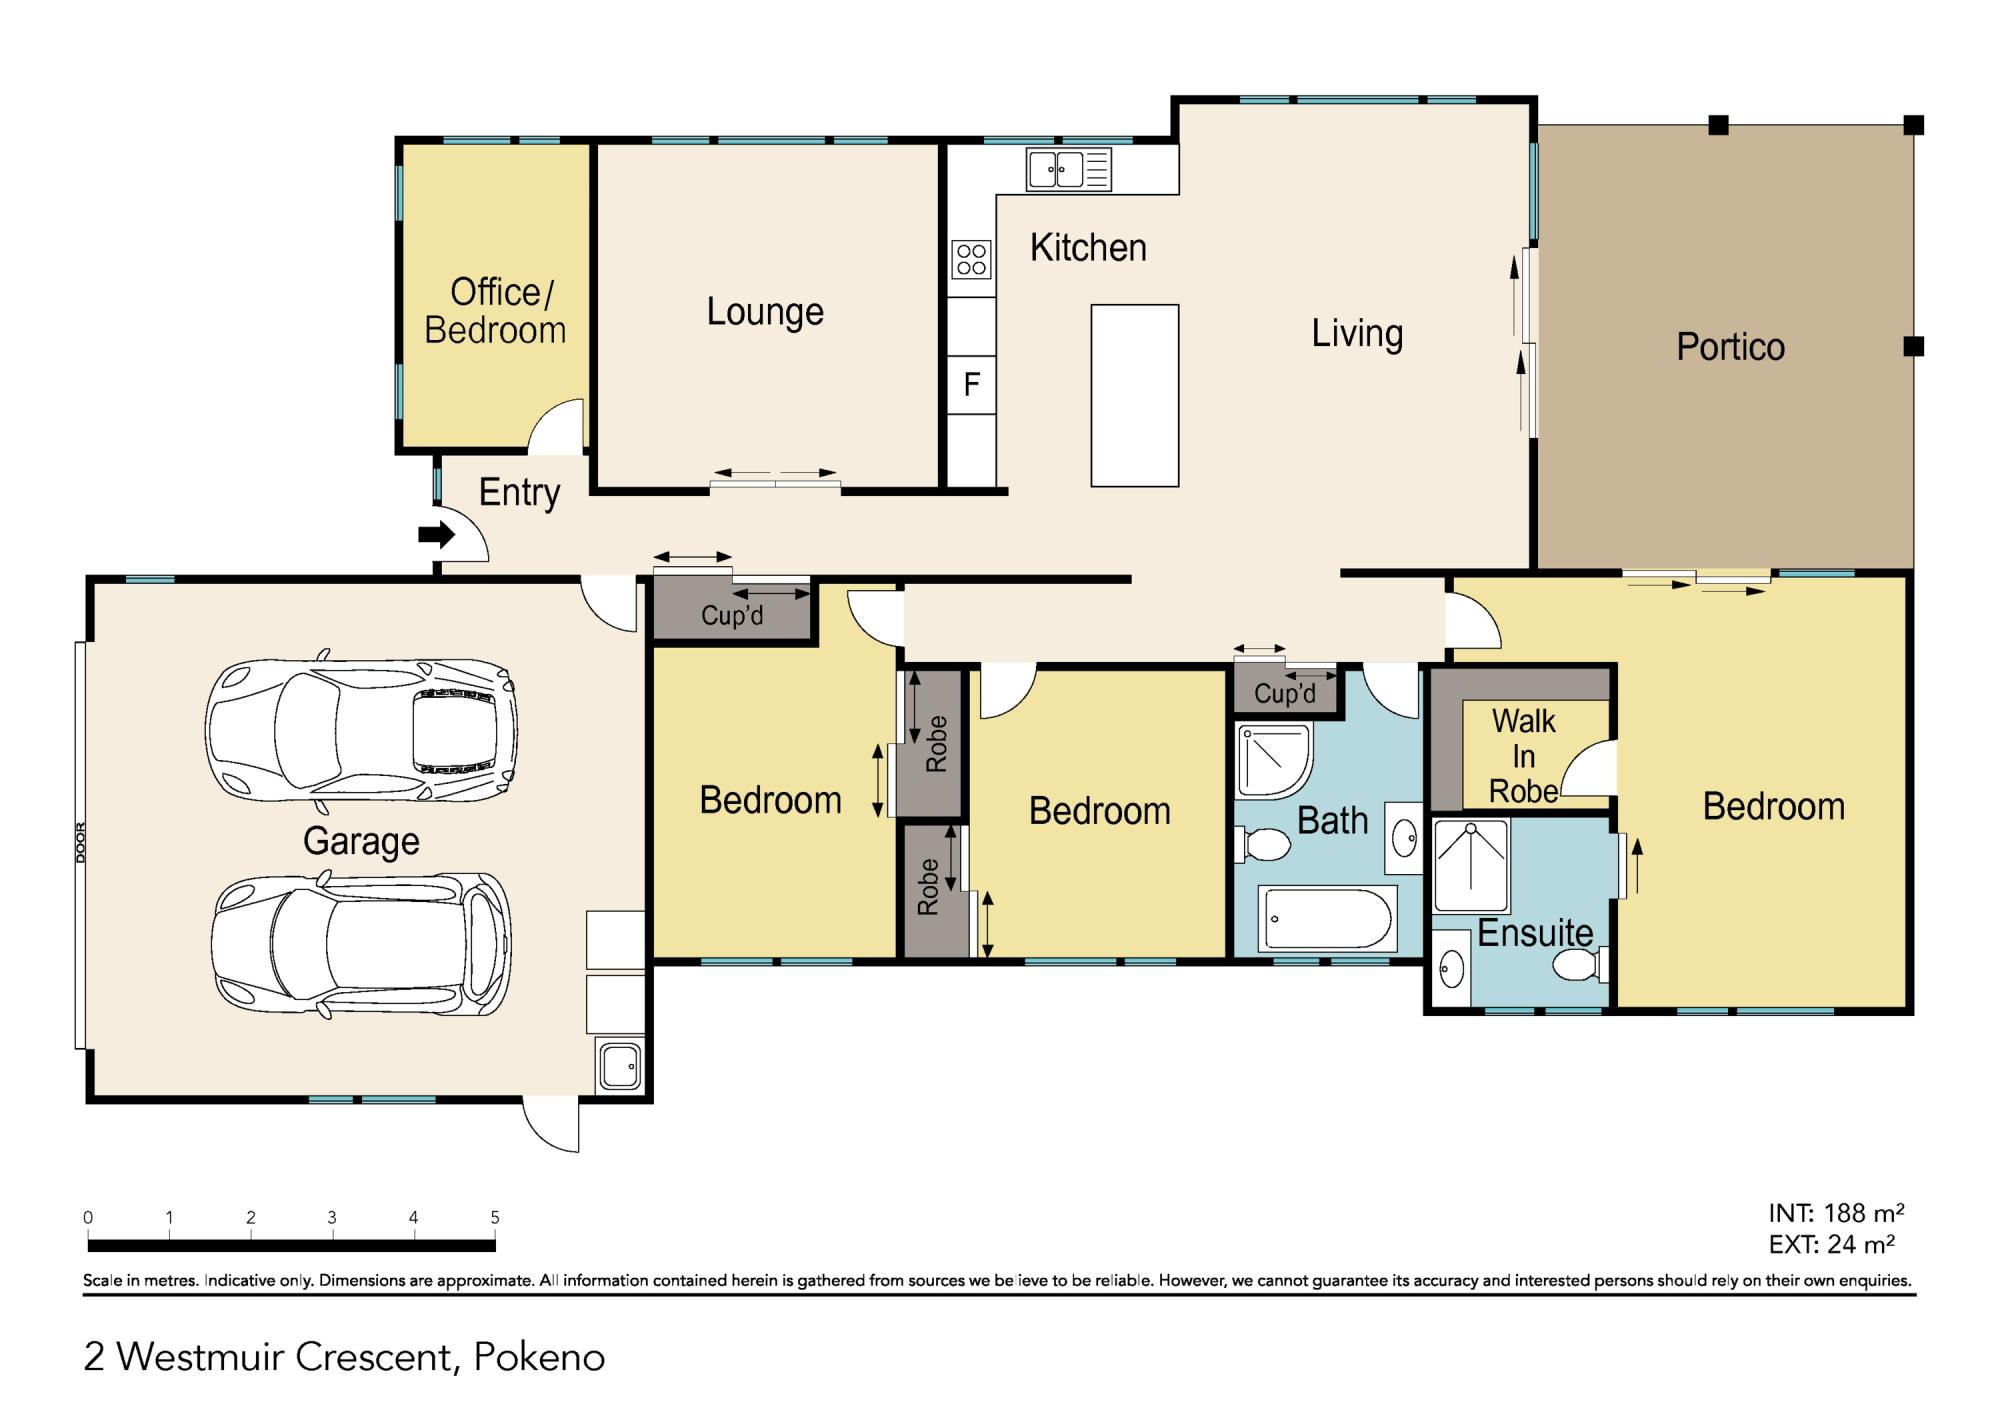 2 Westmuir Crescent Pokenoproperty floorplan image